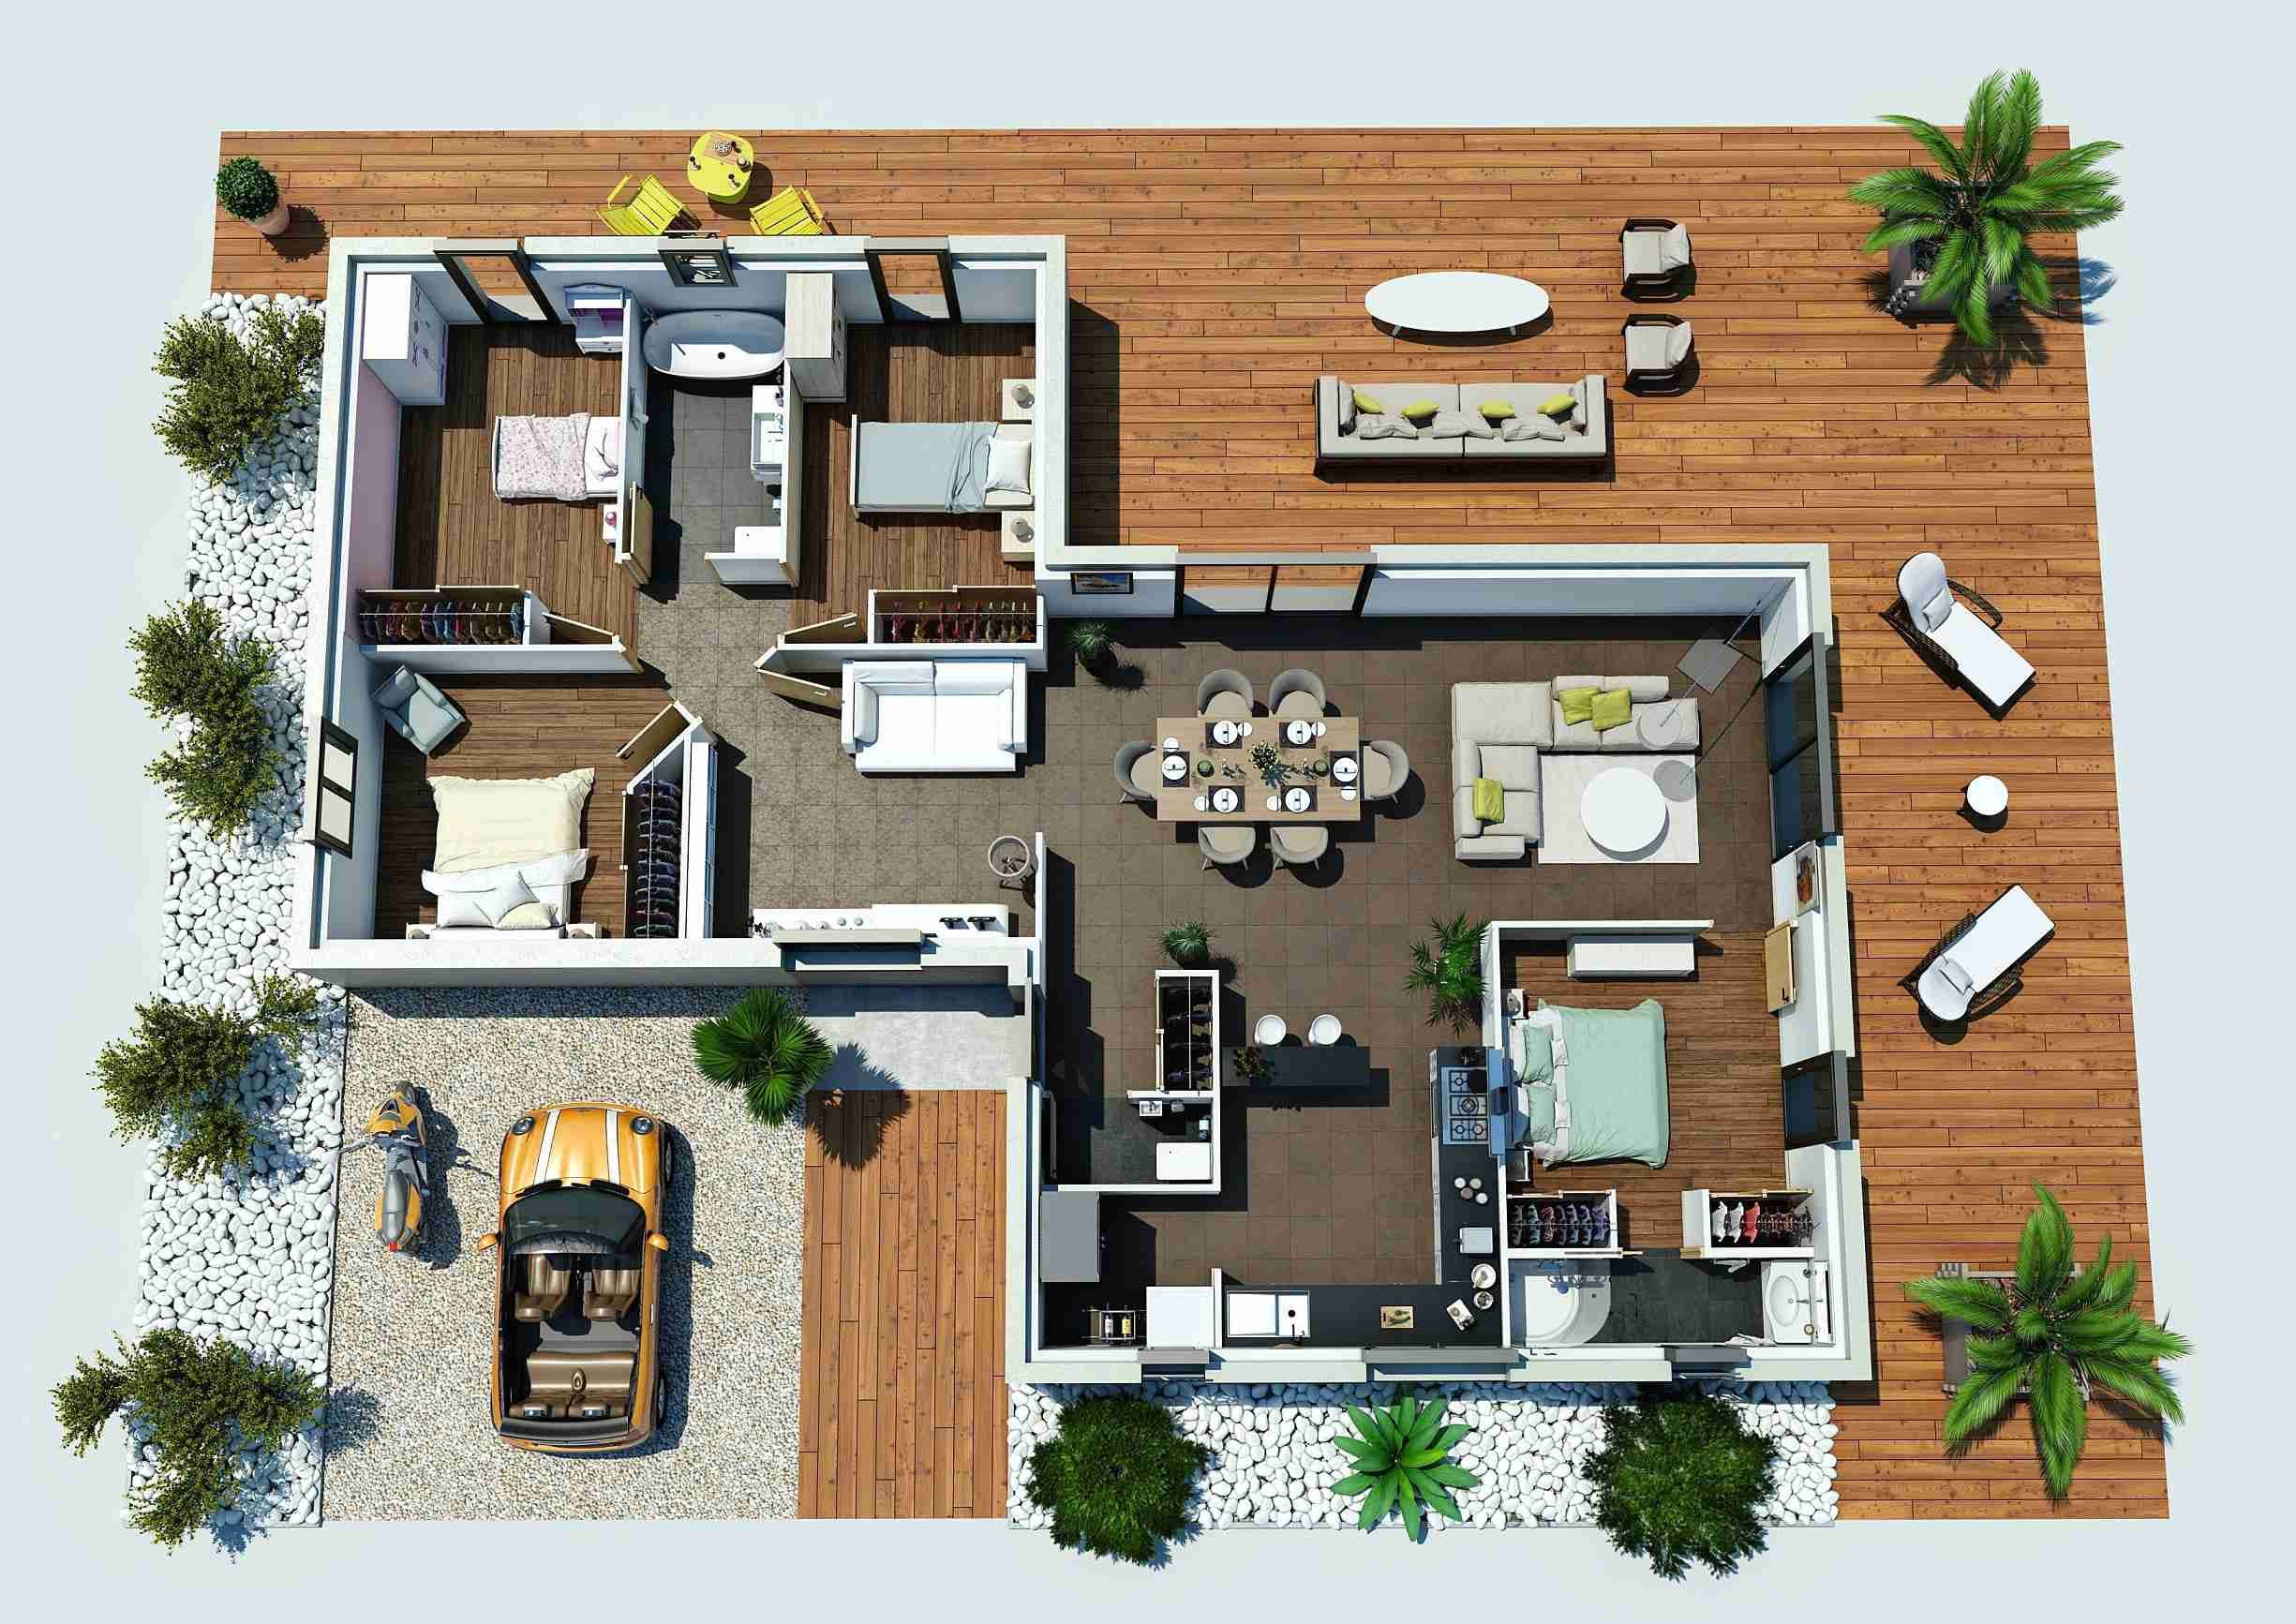 Beautiful Sims 4 Plan Maison | Plan maison, Maison sims ...